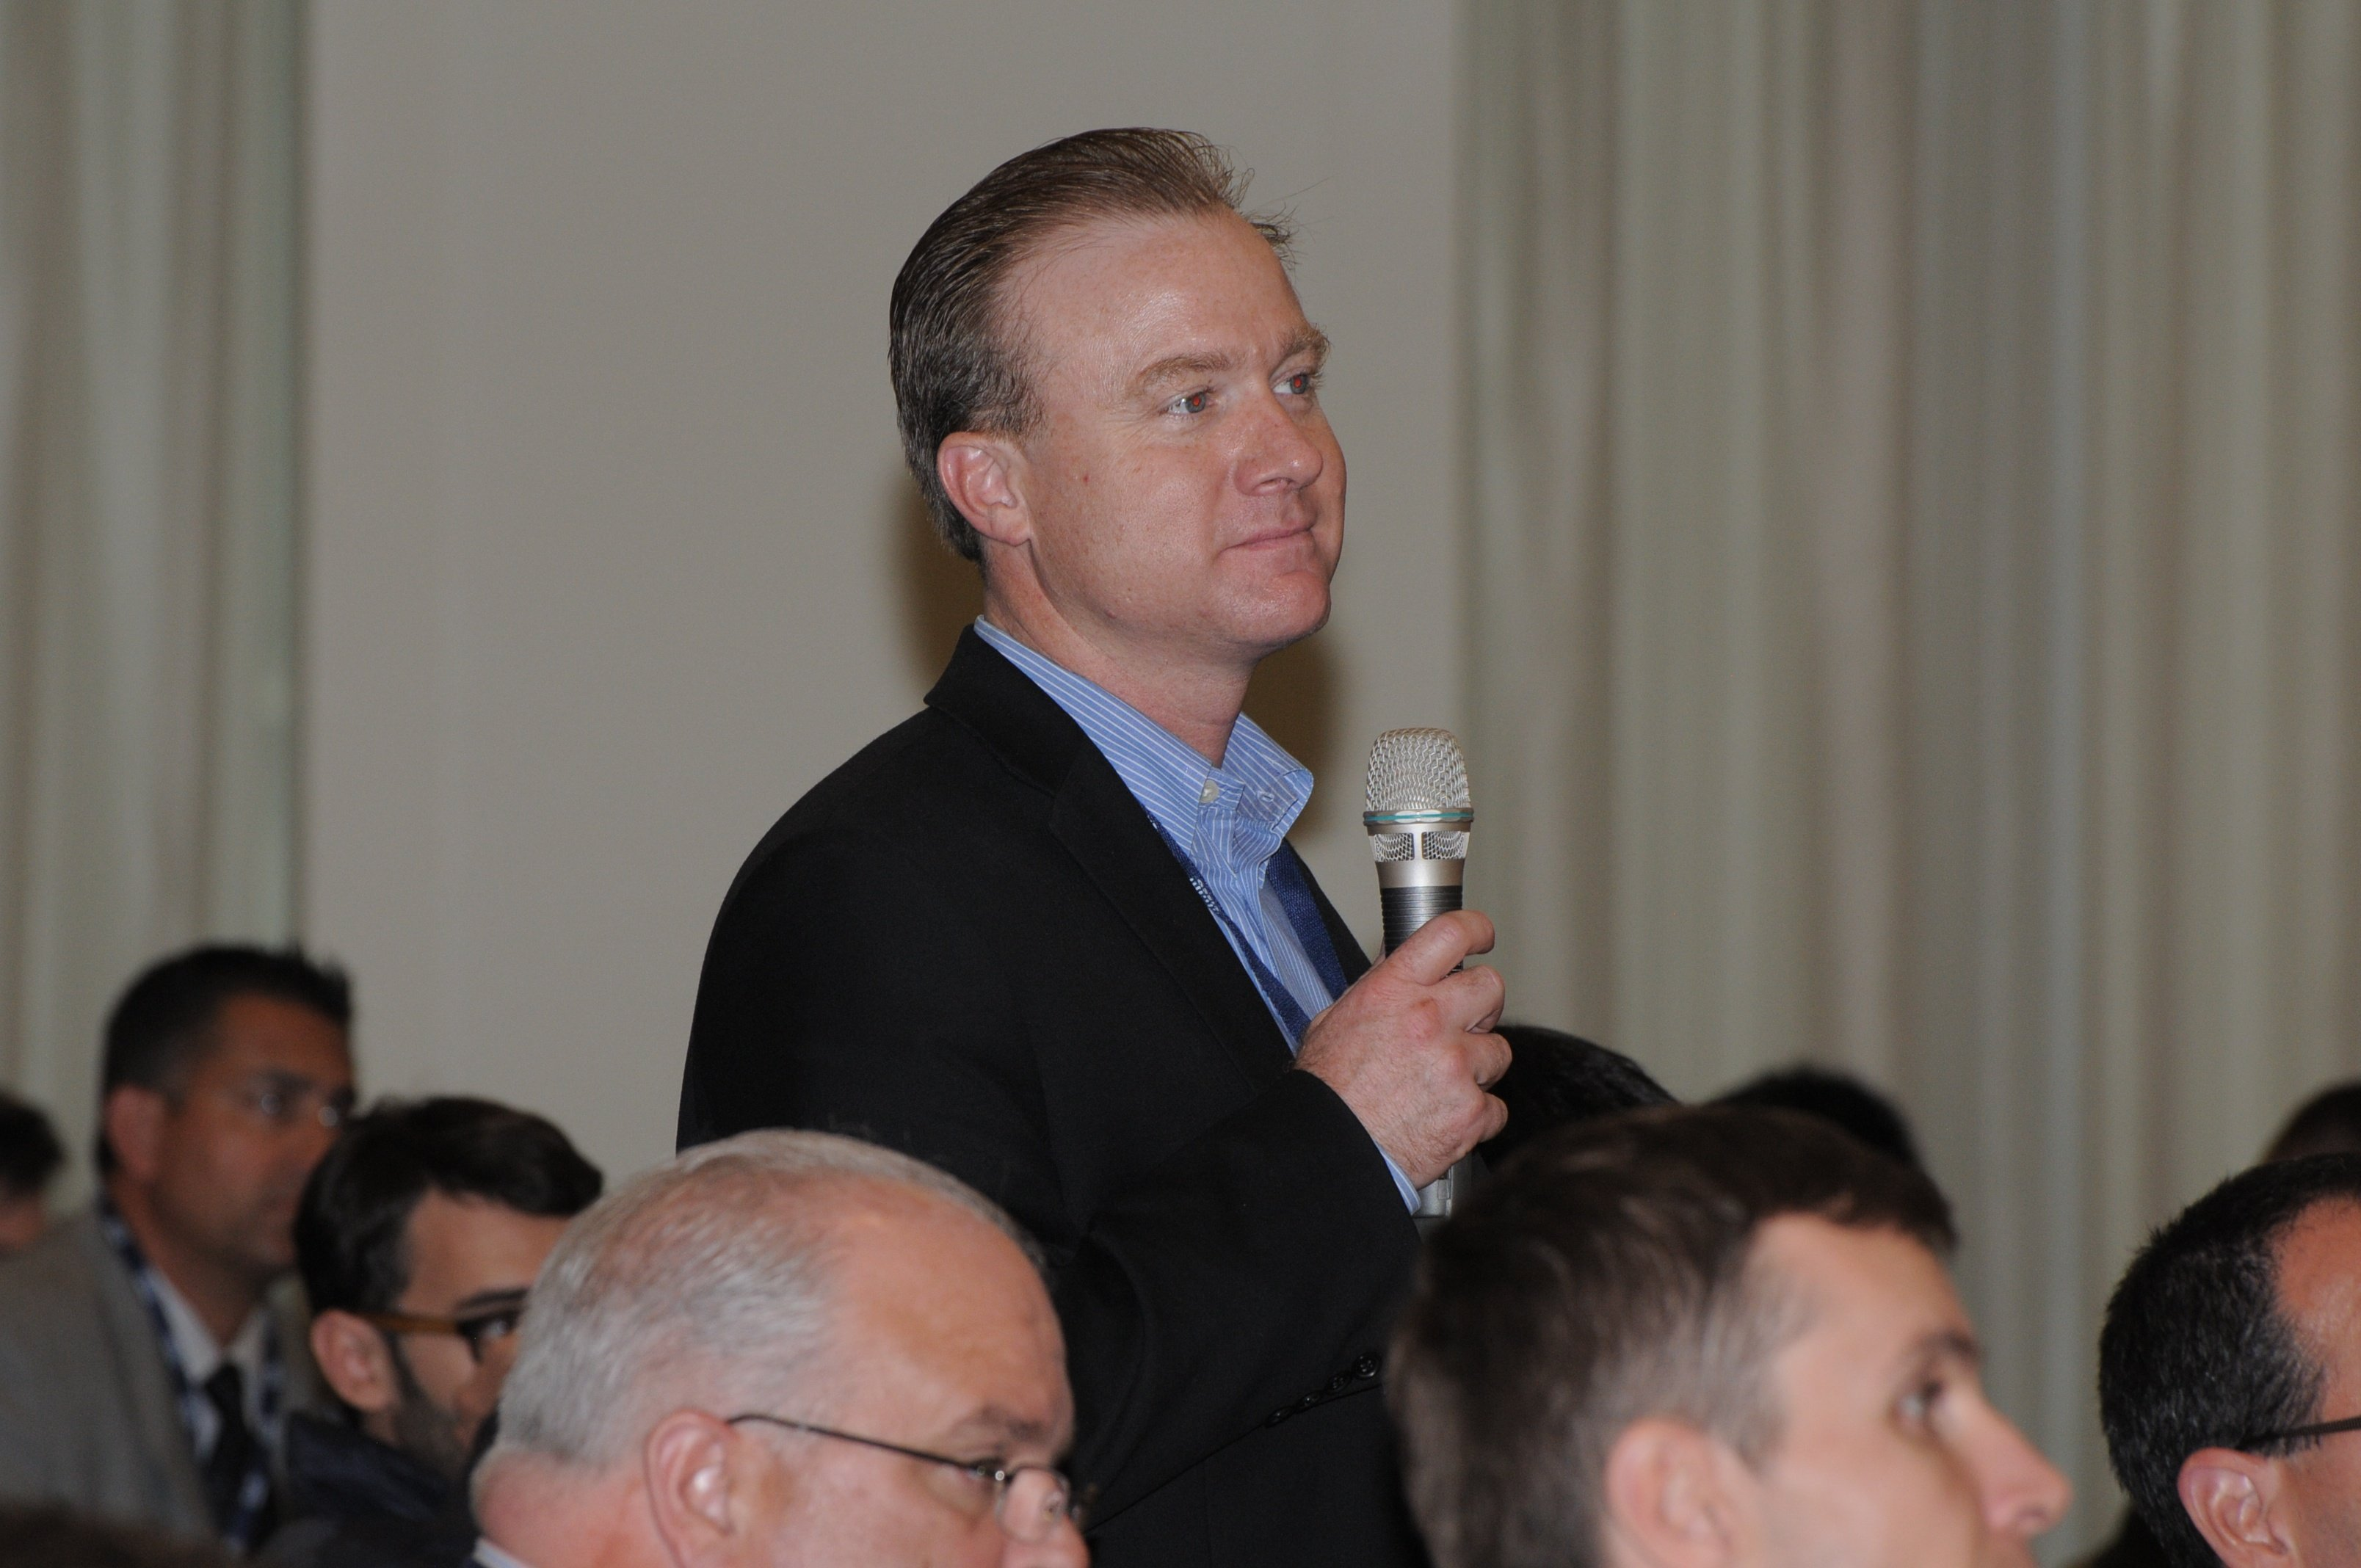 Lane Patterson, Equinix, asks a question from the audience during the Glue Networks and McAfee luncheon partnership session